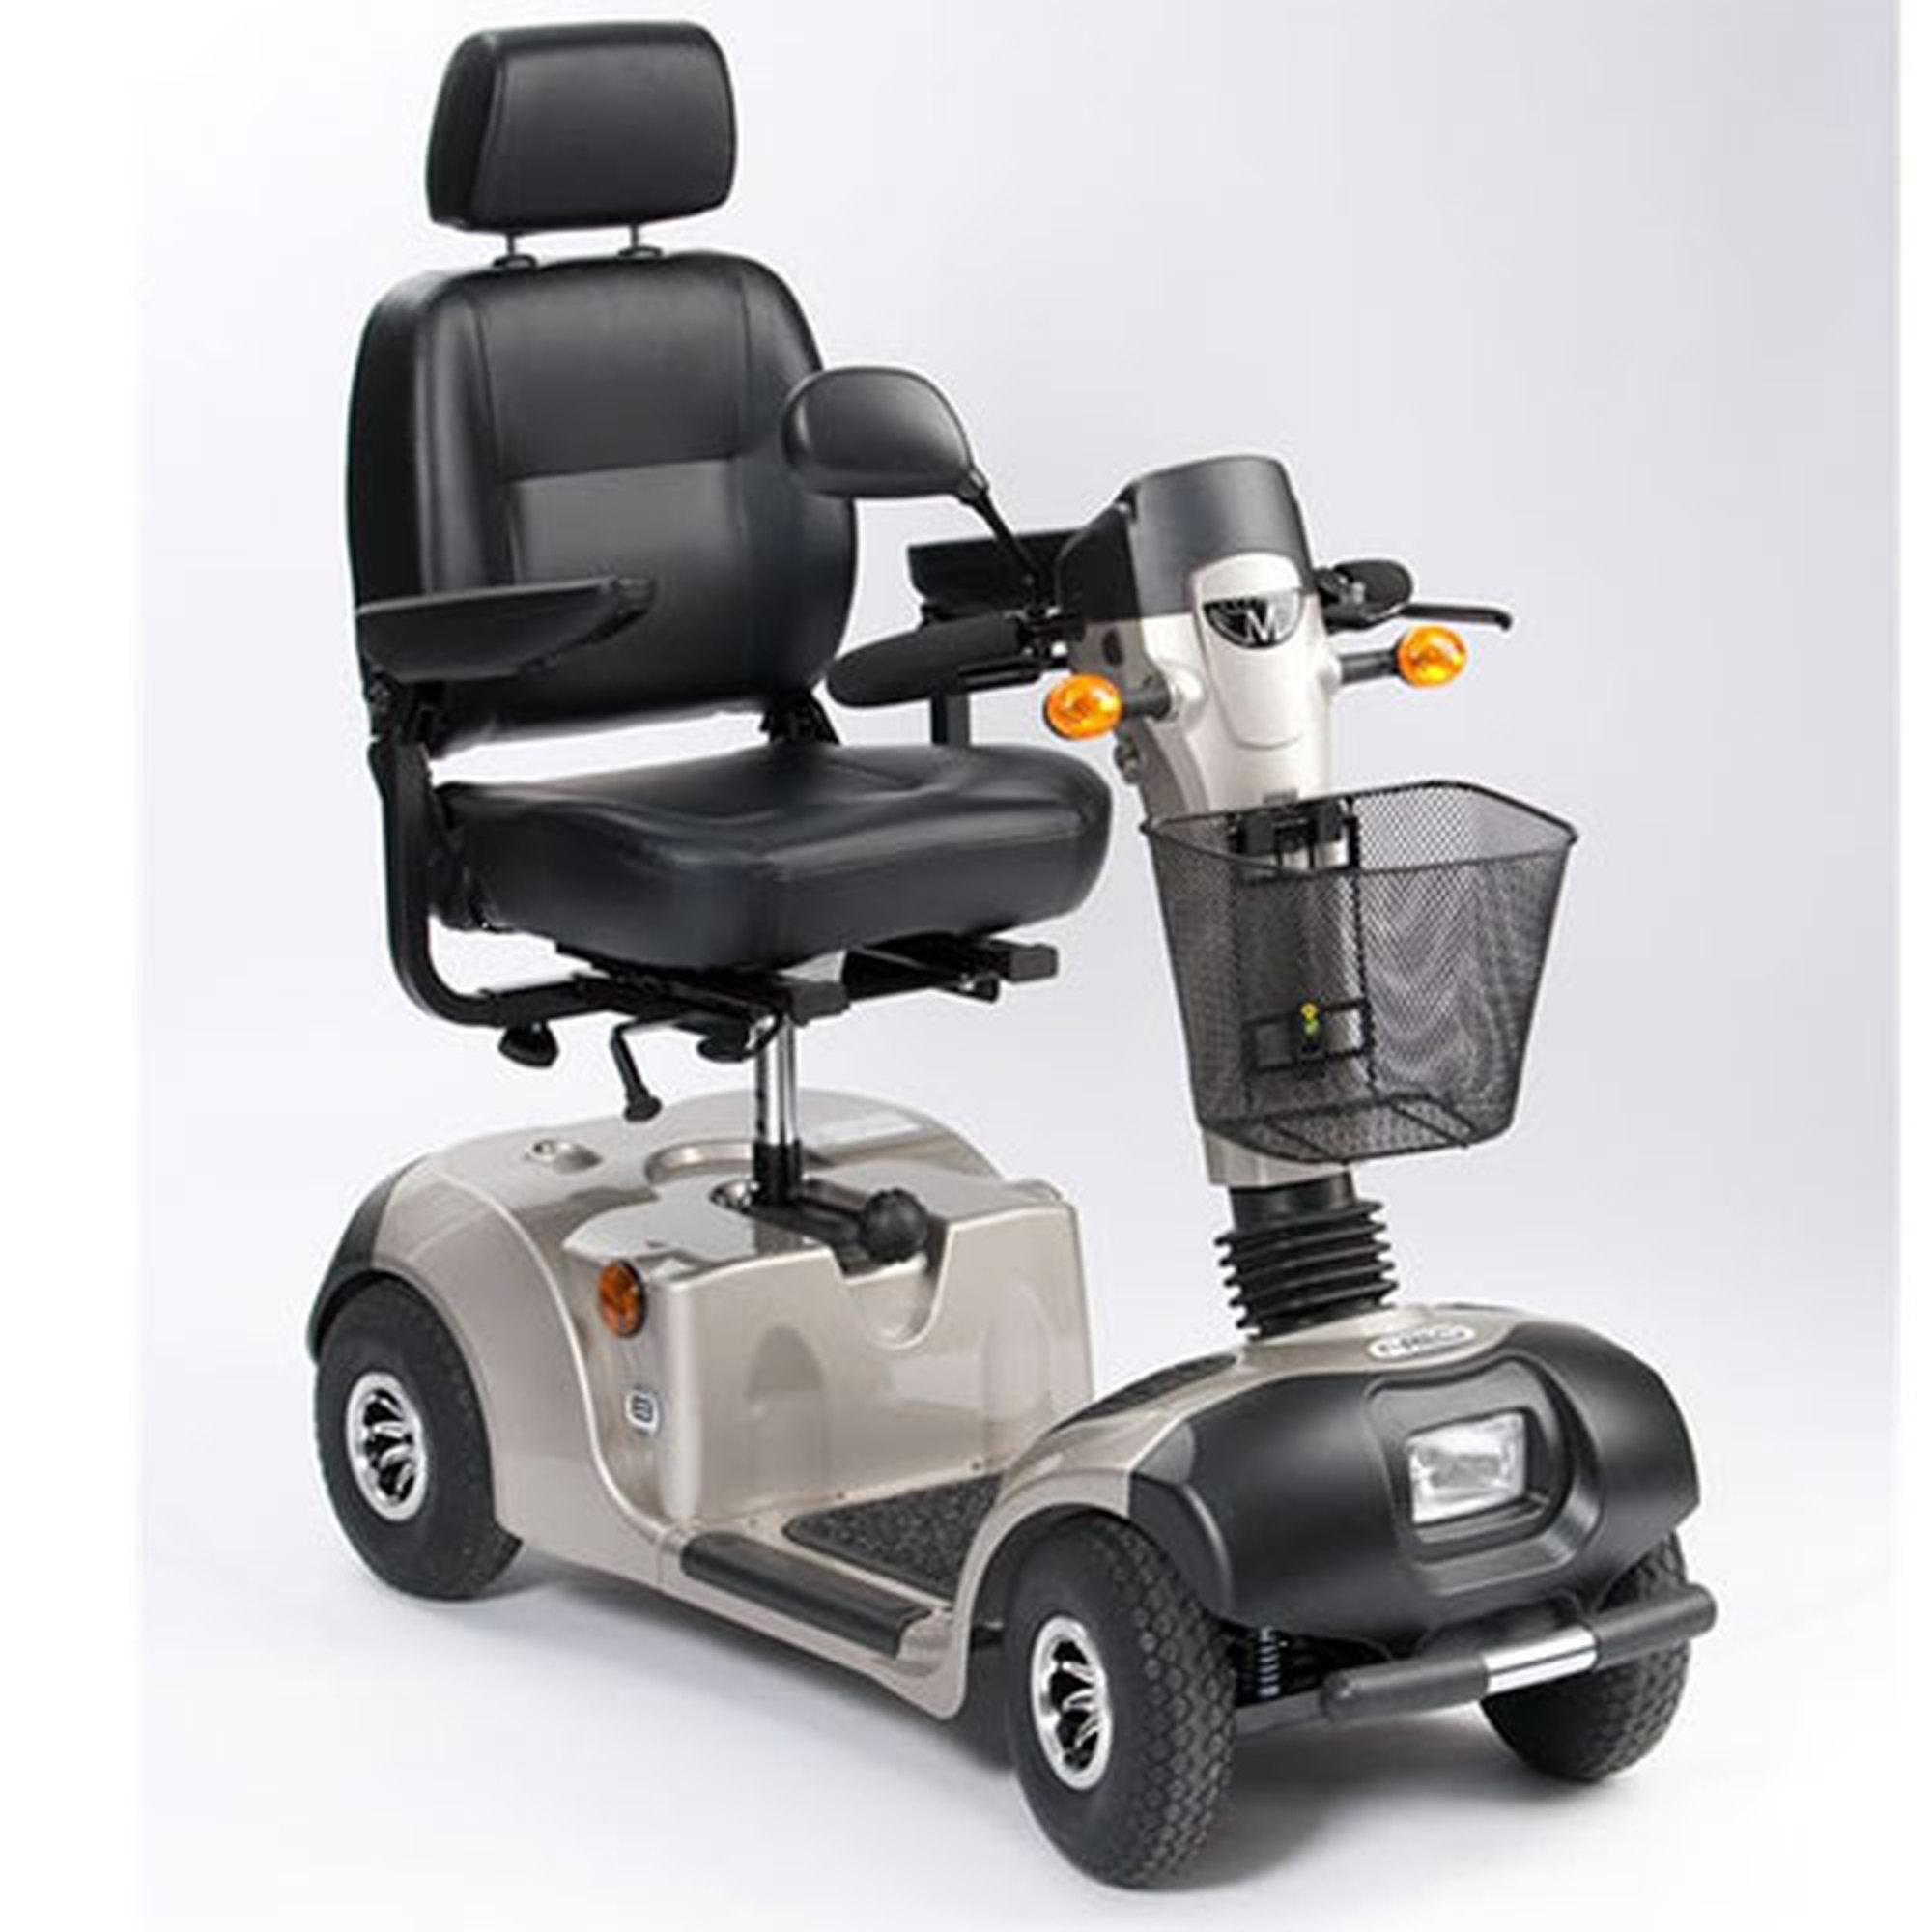 San Diego Rent Electric Scooter: Power Scooter/ Wheelchair For Rent In Malta